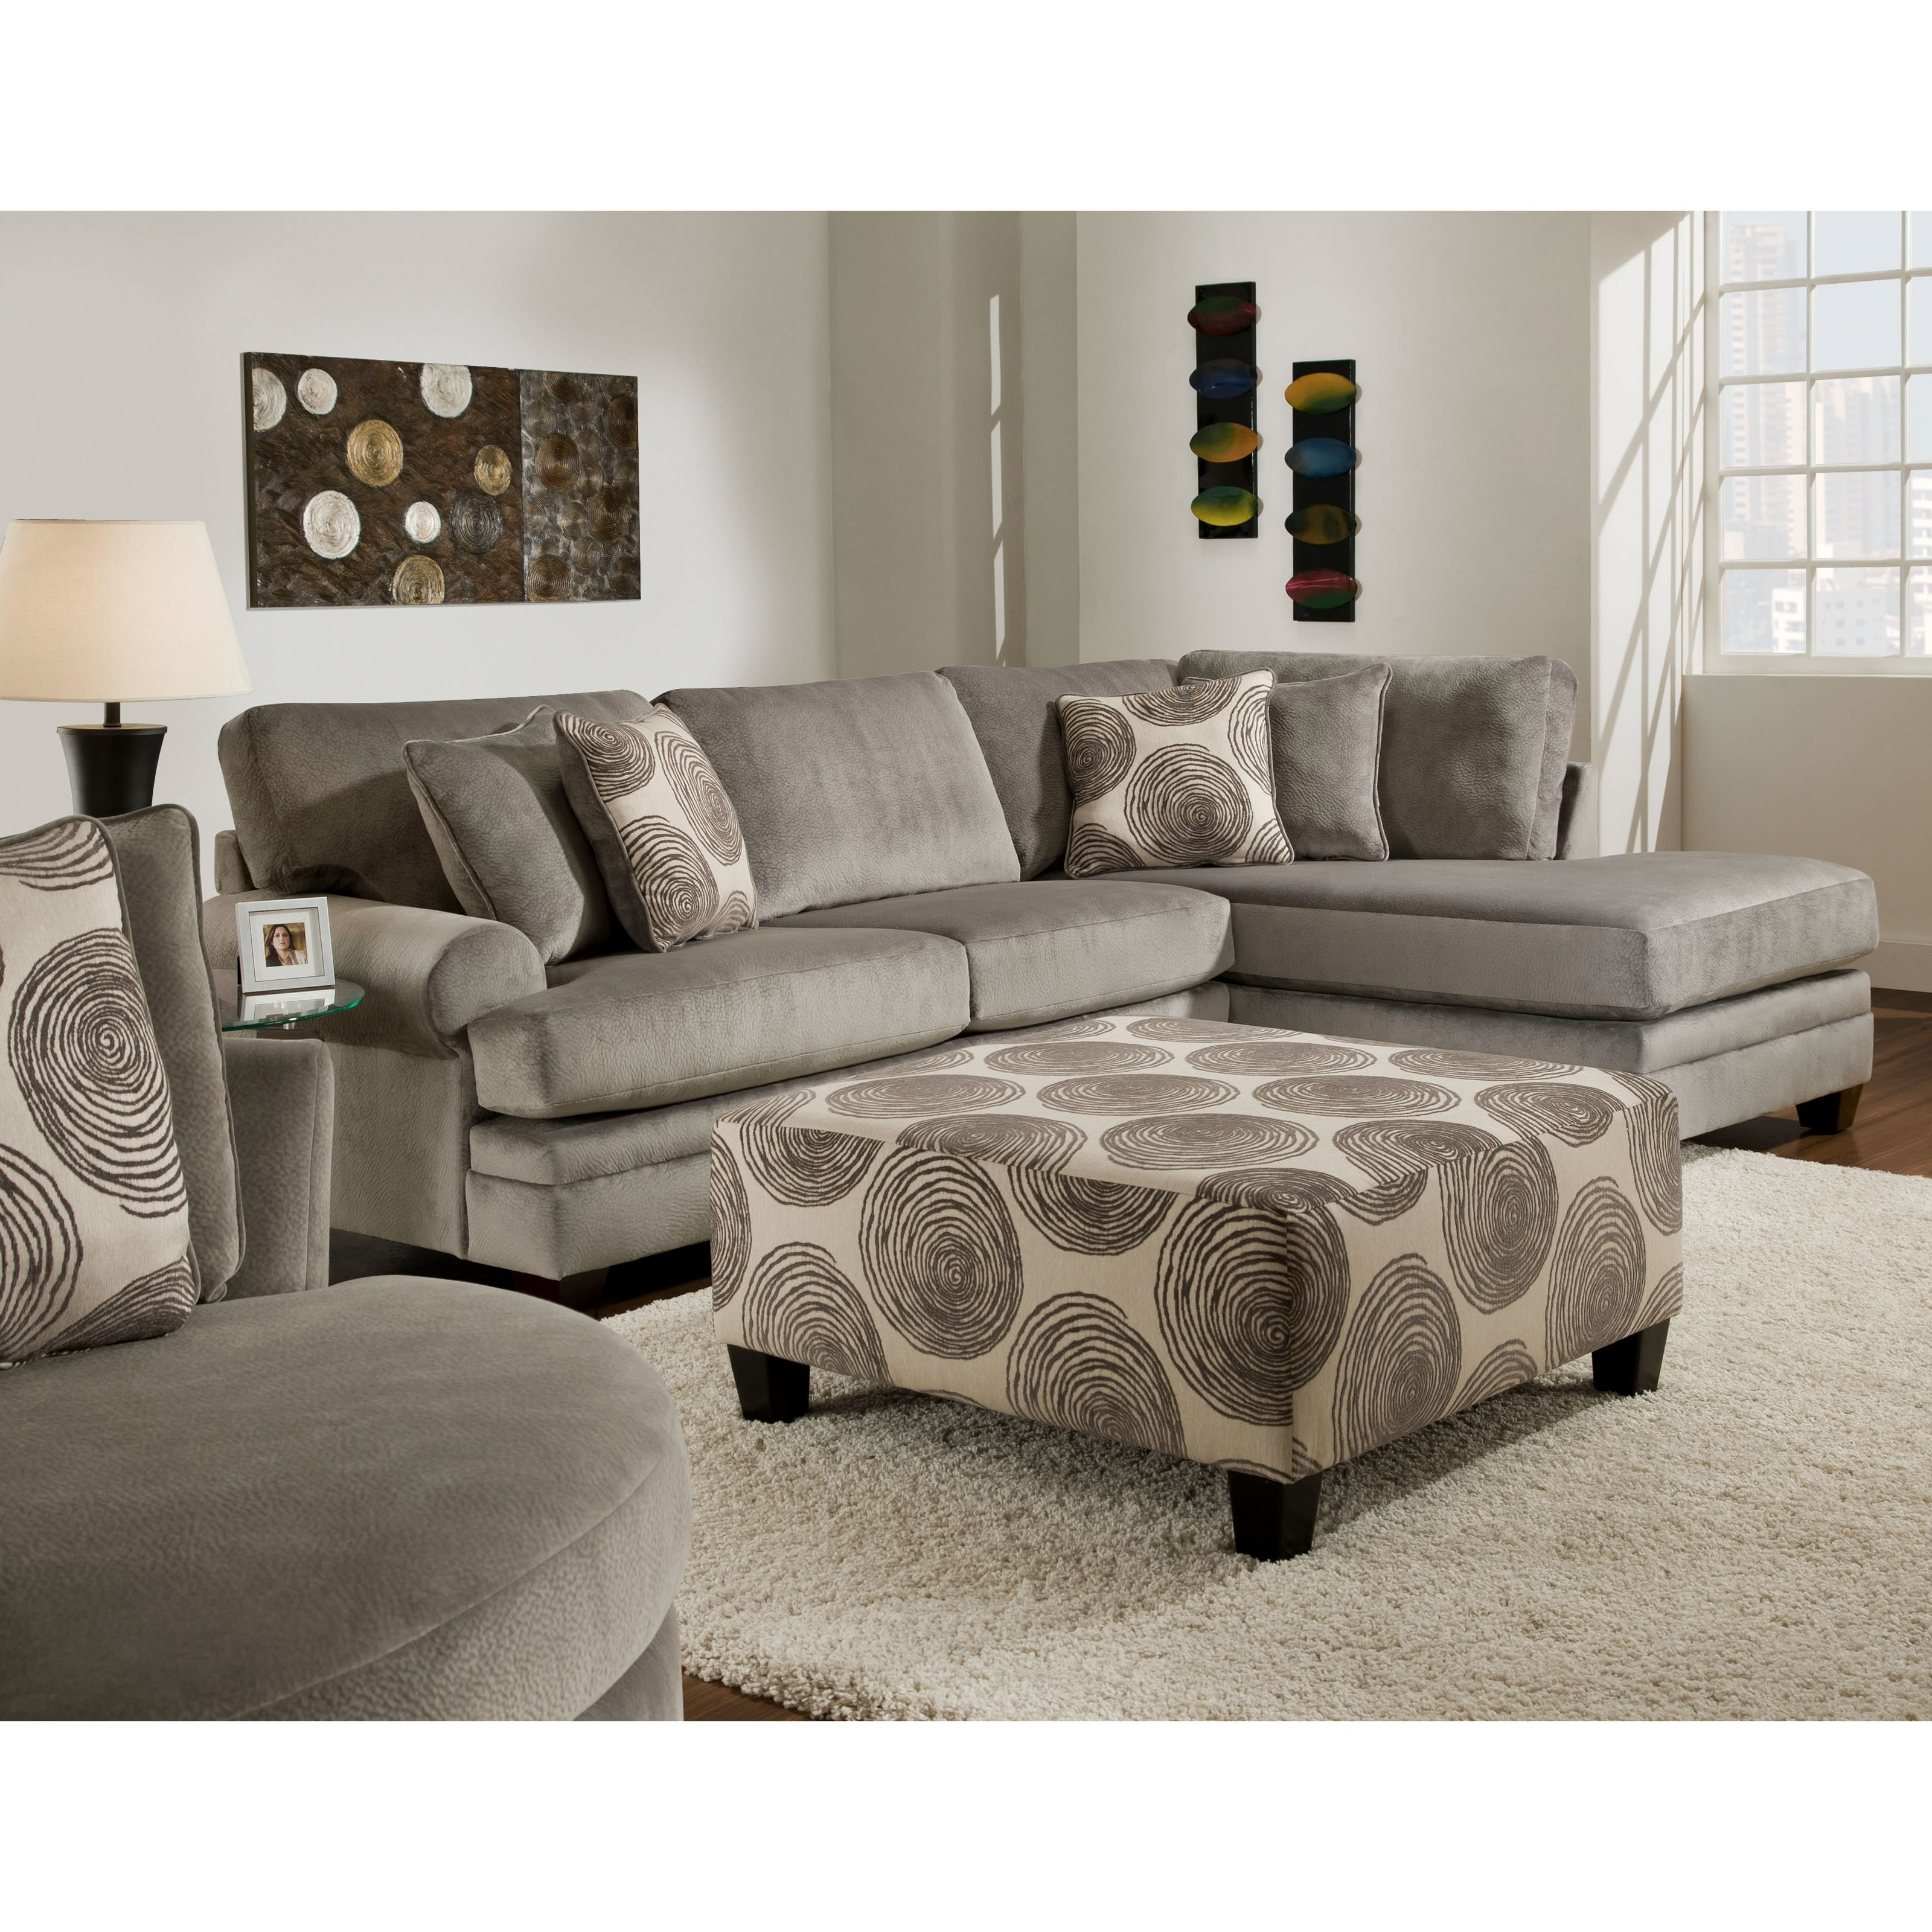 Chelsea Home Furniture Rayna Sectional Sofa | Hayneedle With Regard To Sectional Sofas For Campers (Image 1 of 10)